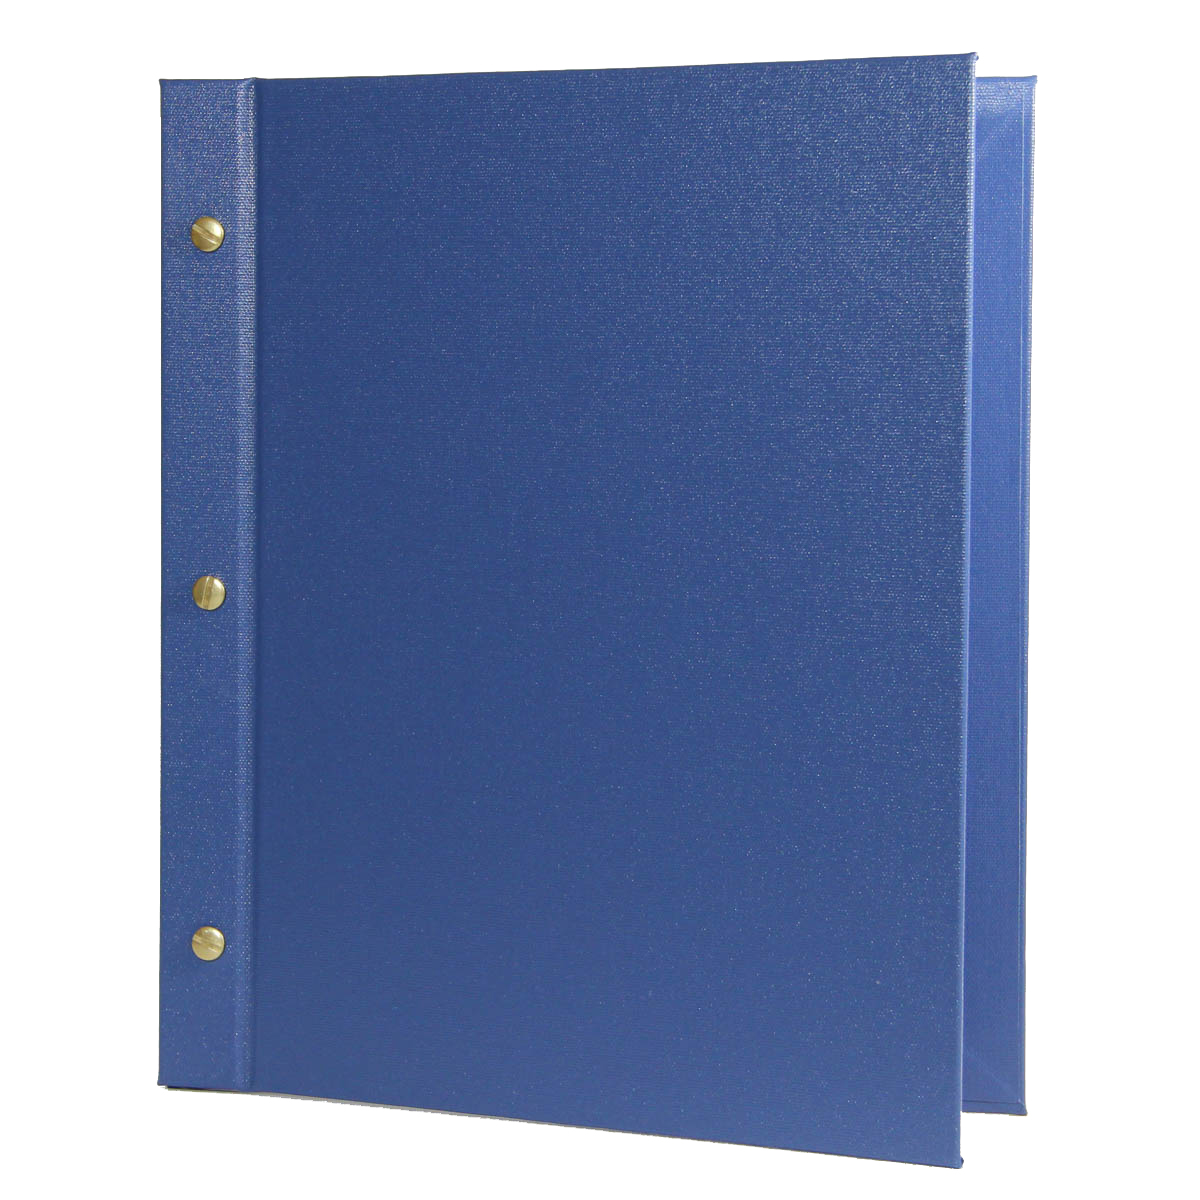 La Playa Chicago Menu Board 8.5x11 in azure blue with gold screws and posts.